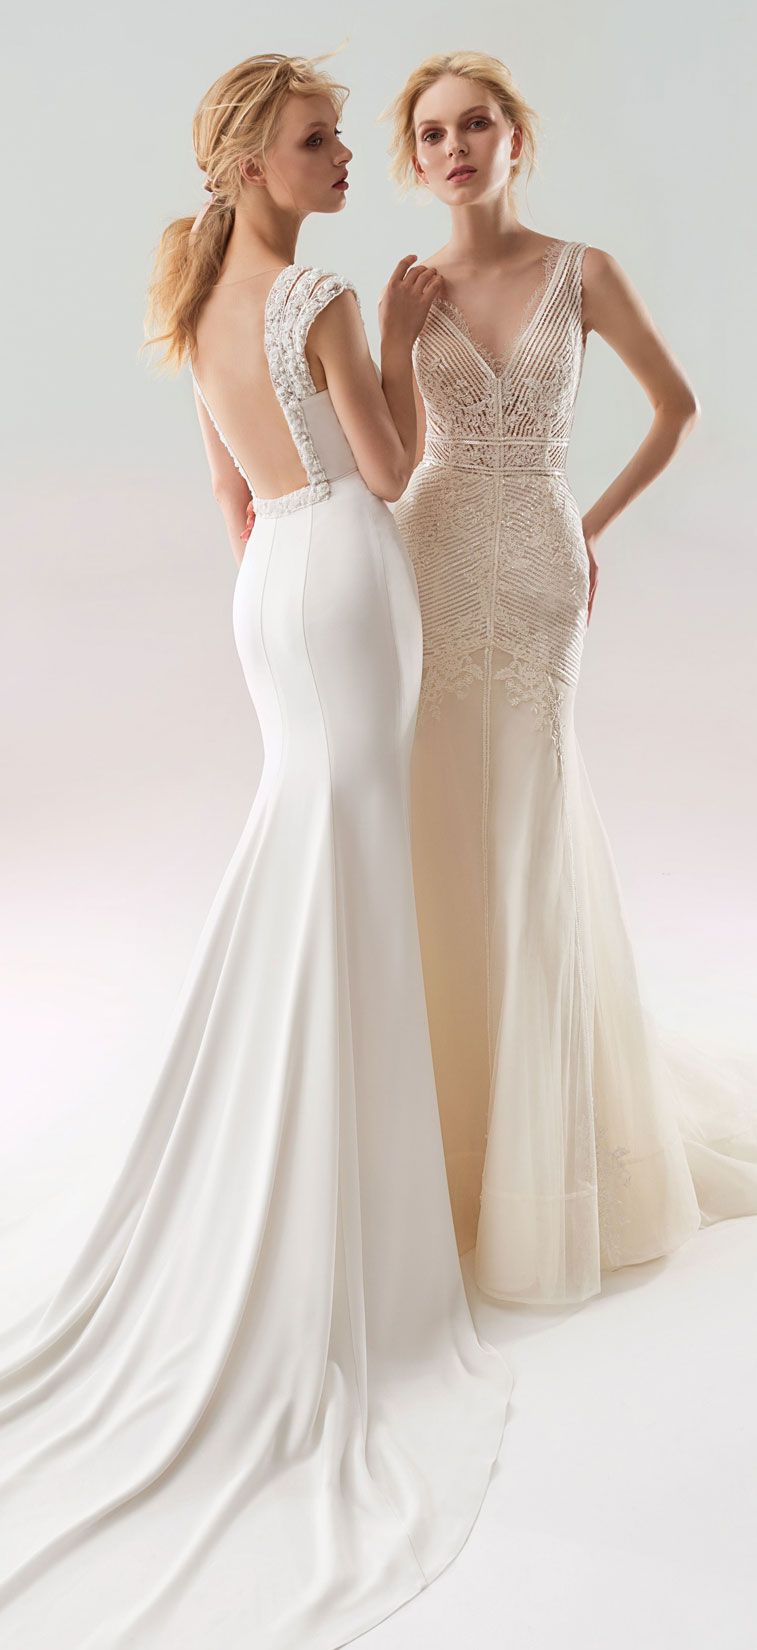 Papilio Wedding Dresses – White Wind Bridal Collection